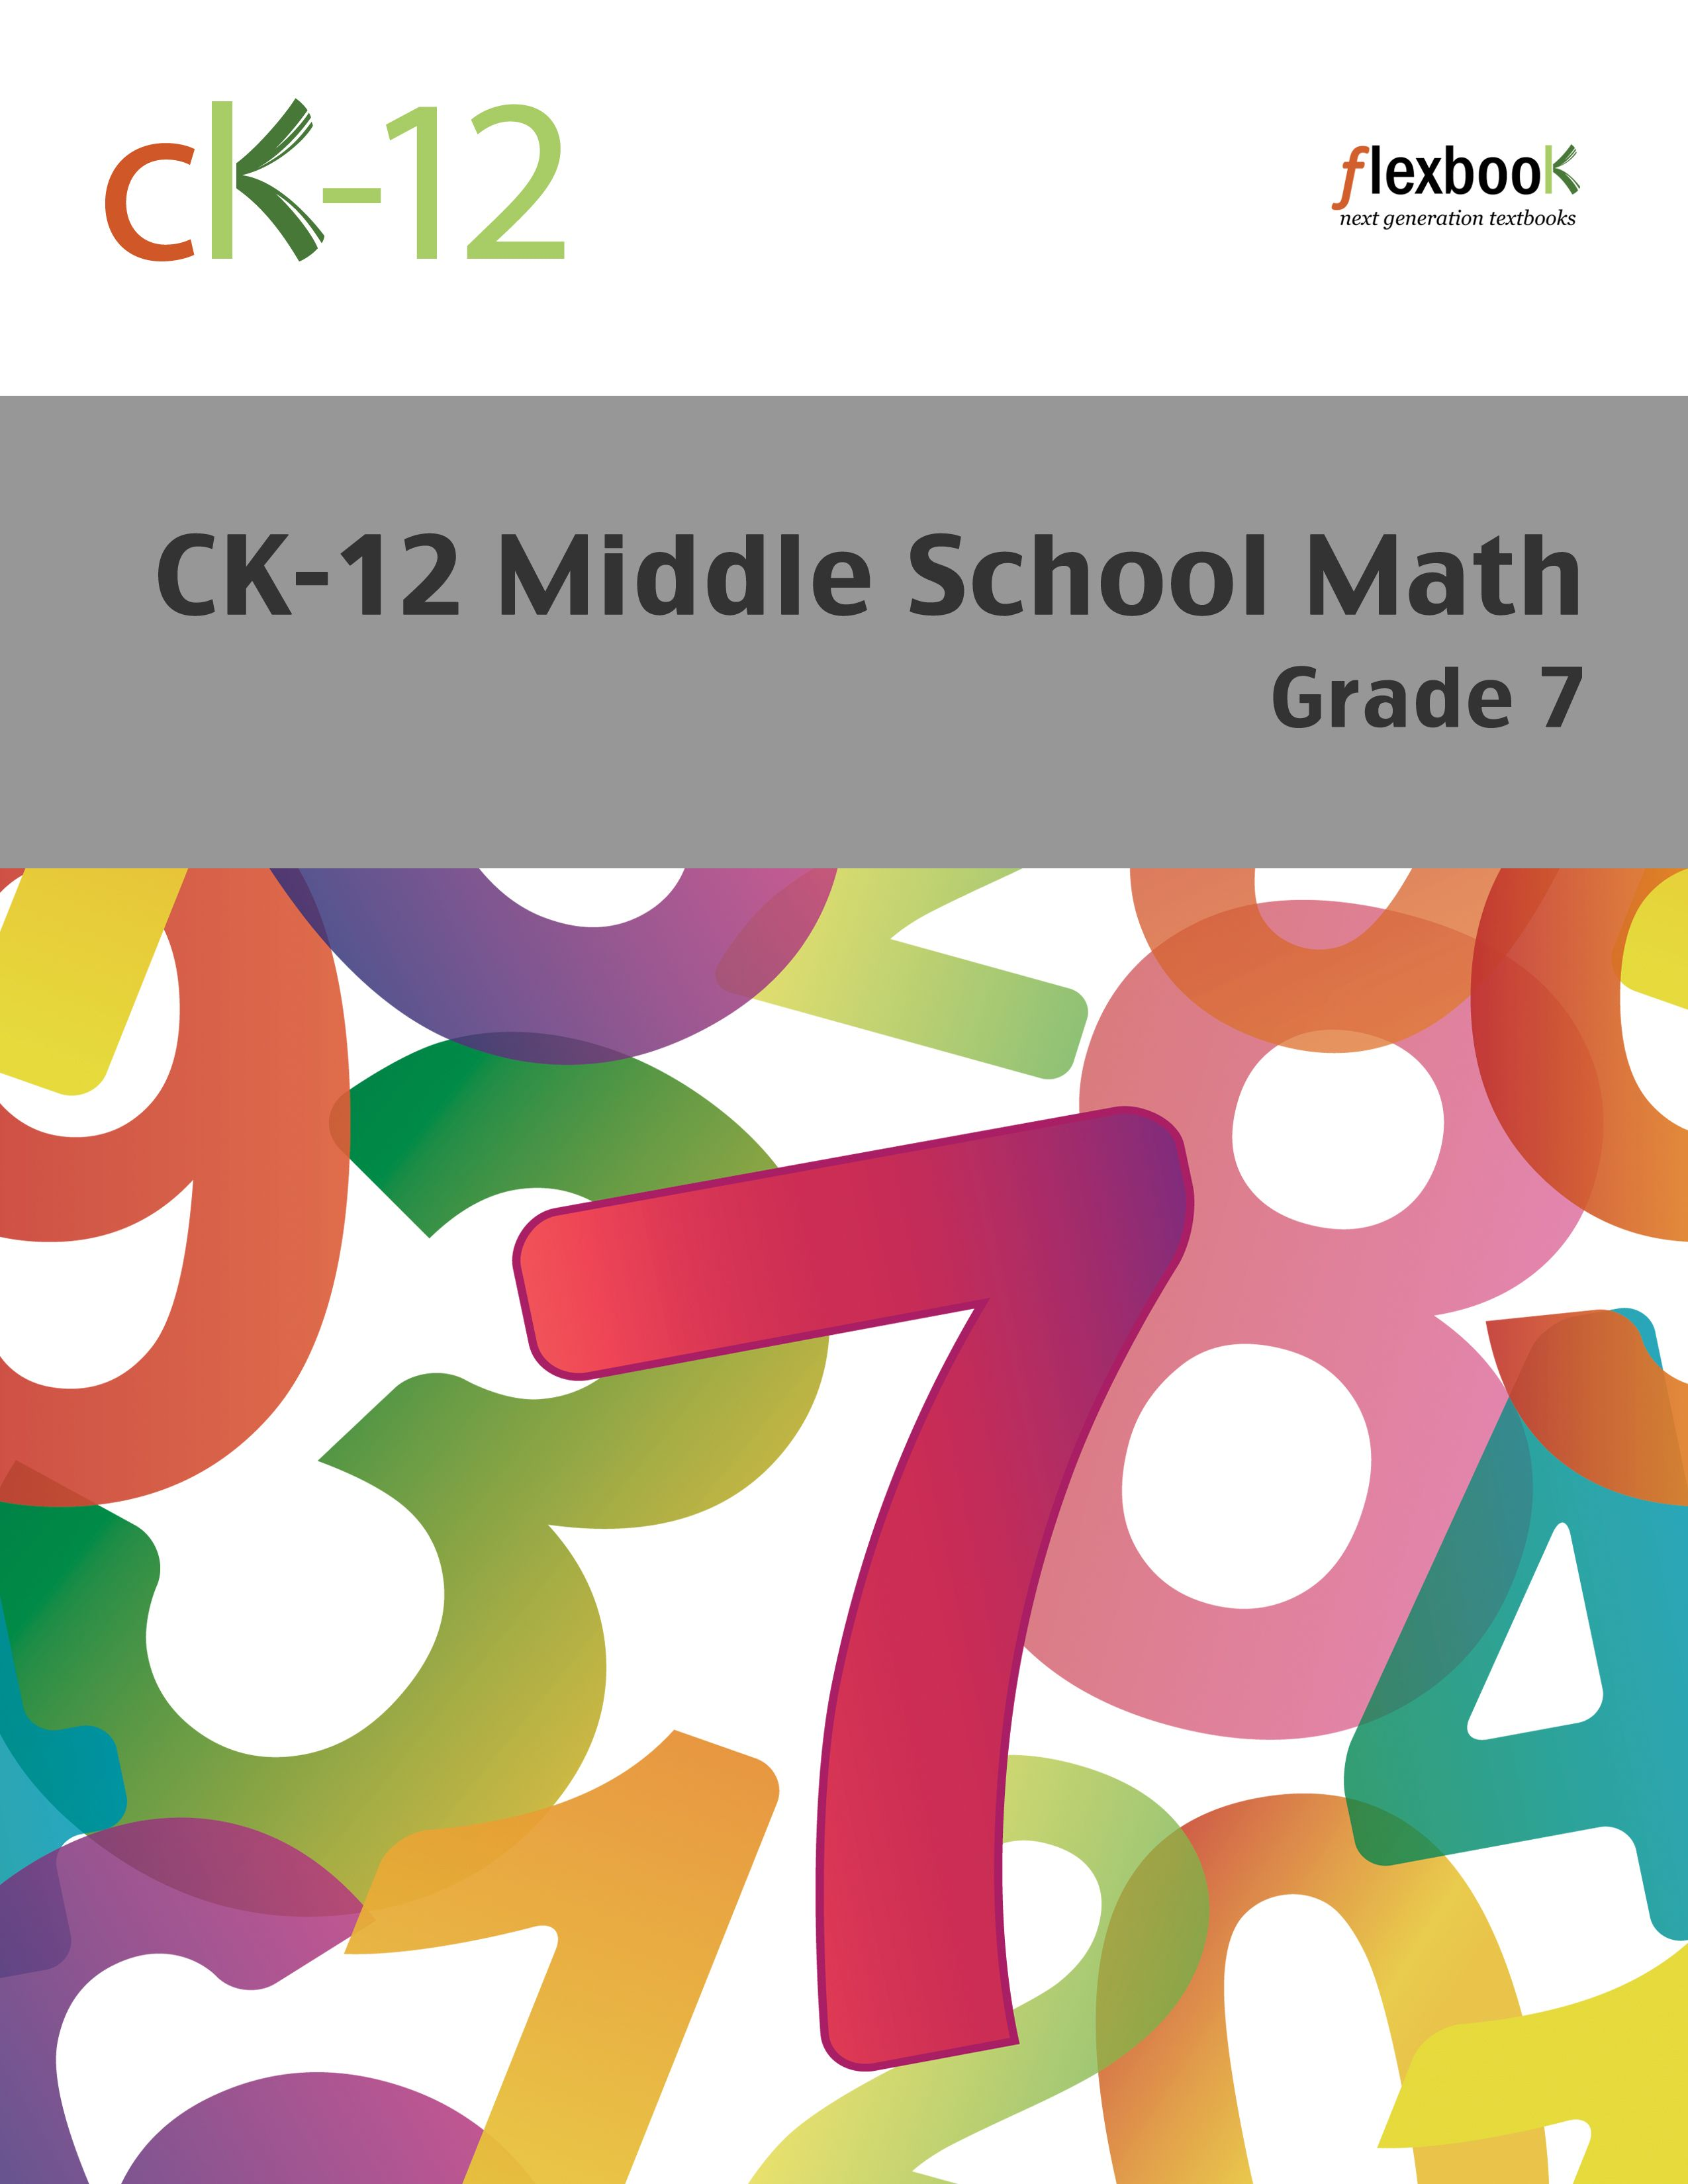 Access this FlexBooks with one click: http://www.ck12.org/book/CK-12 ...